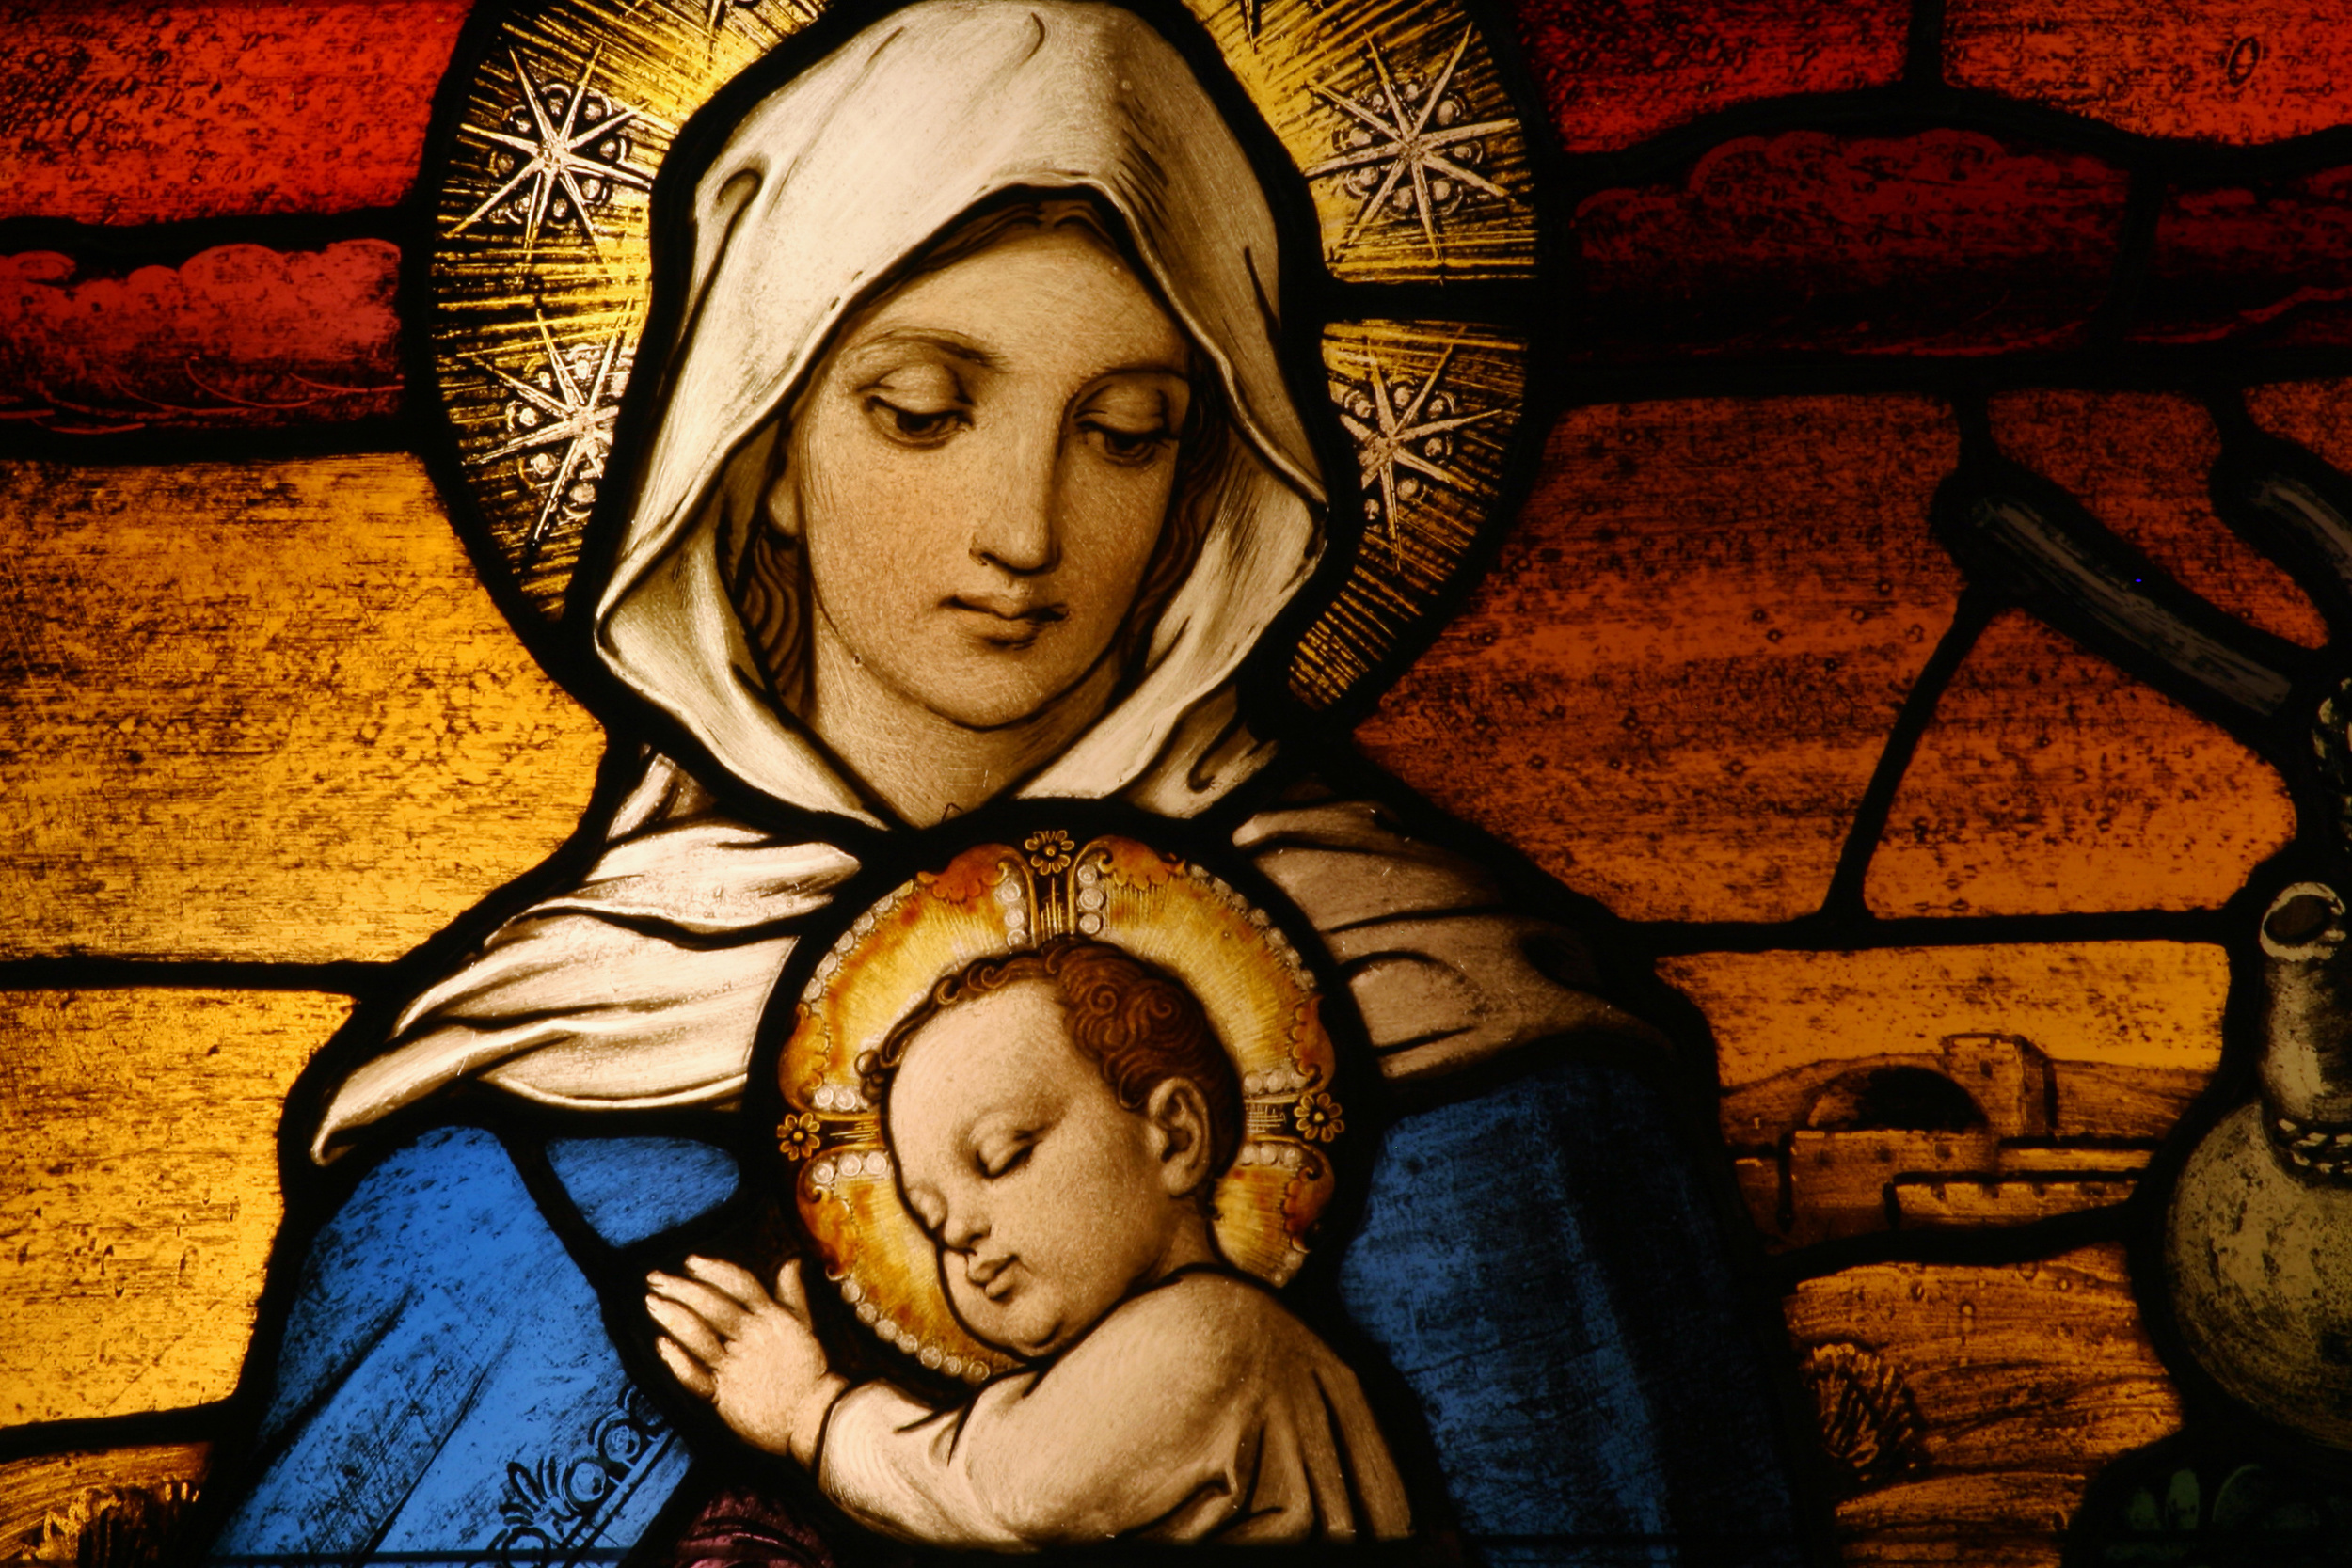 Roman Catholicism often depict Jesus as a baby in Mary's arms instead of reverencing Him as the Son of the Most High God. Some might say this is a stealth attempt to undermine Jesus's divinity as  The Christ .(Image: CURA Photography)